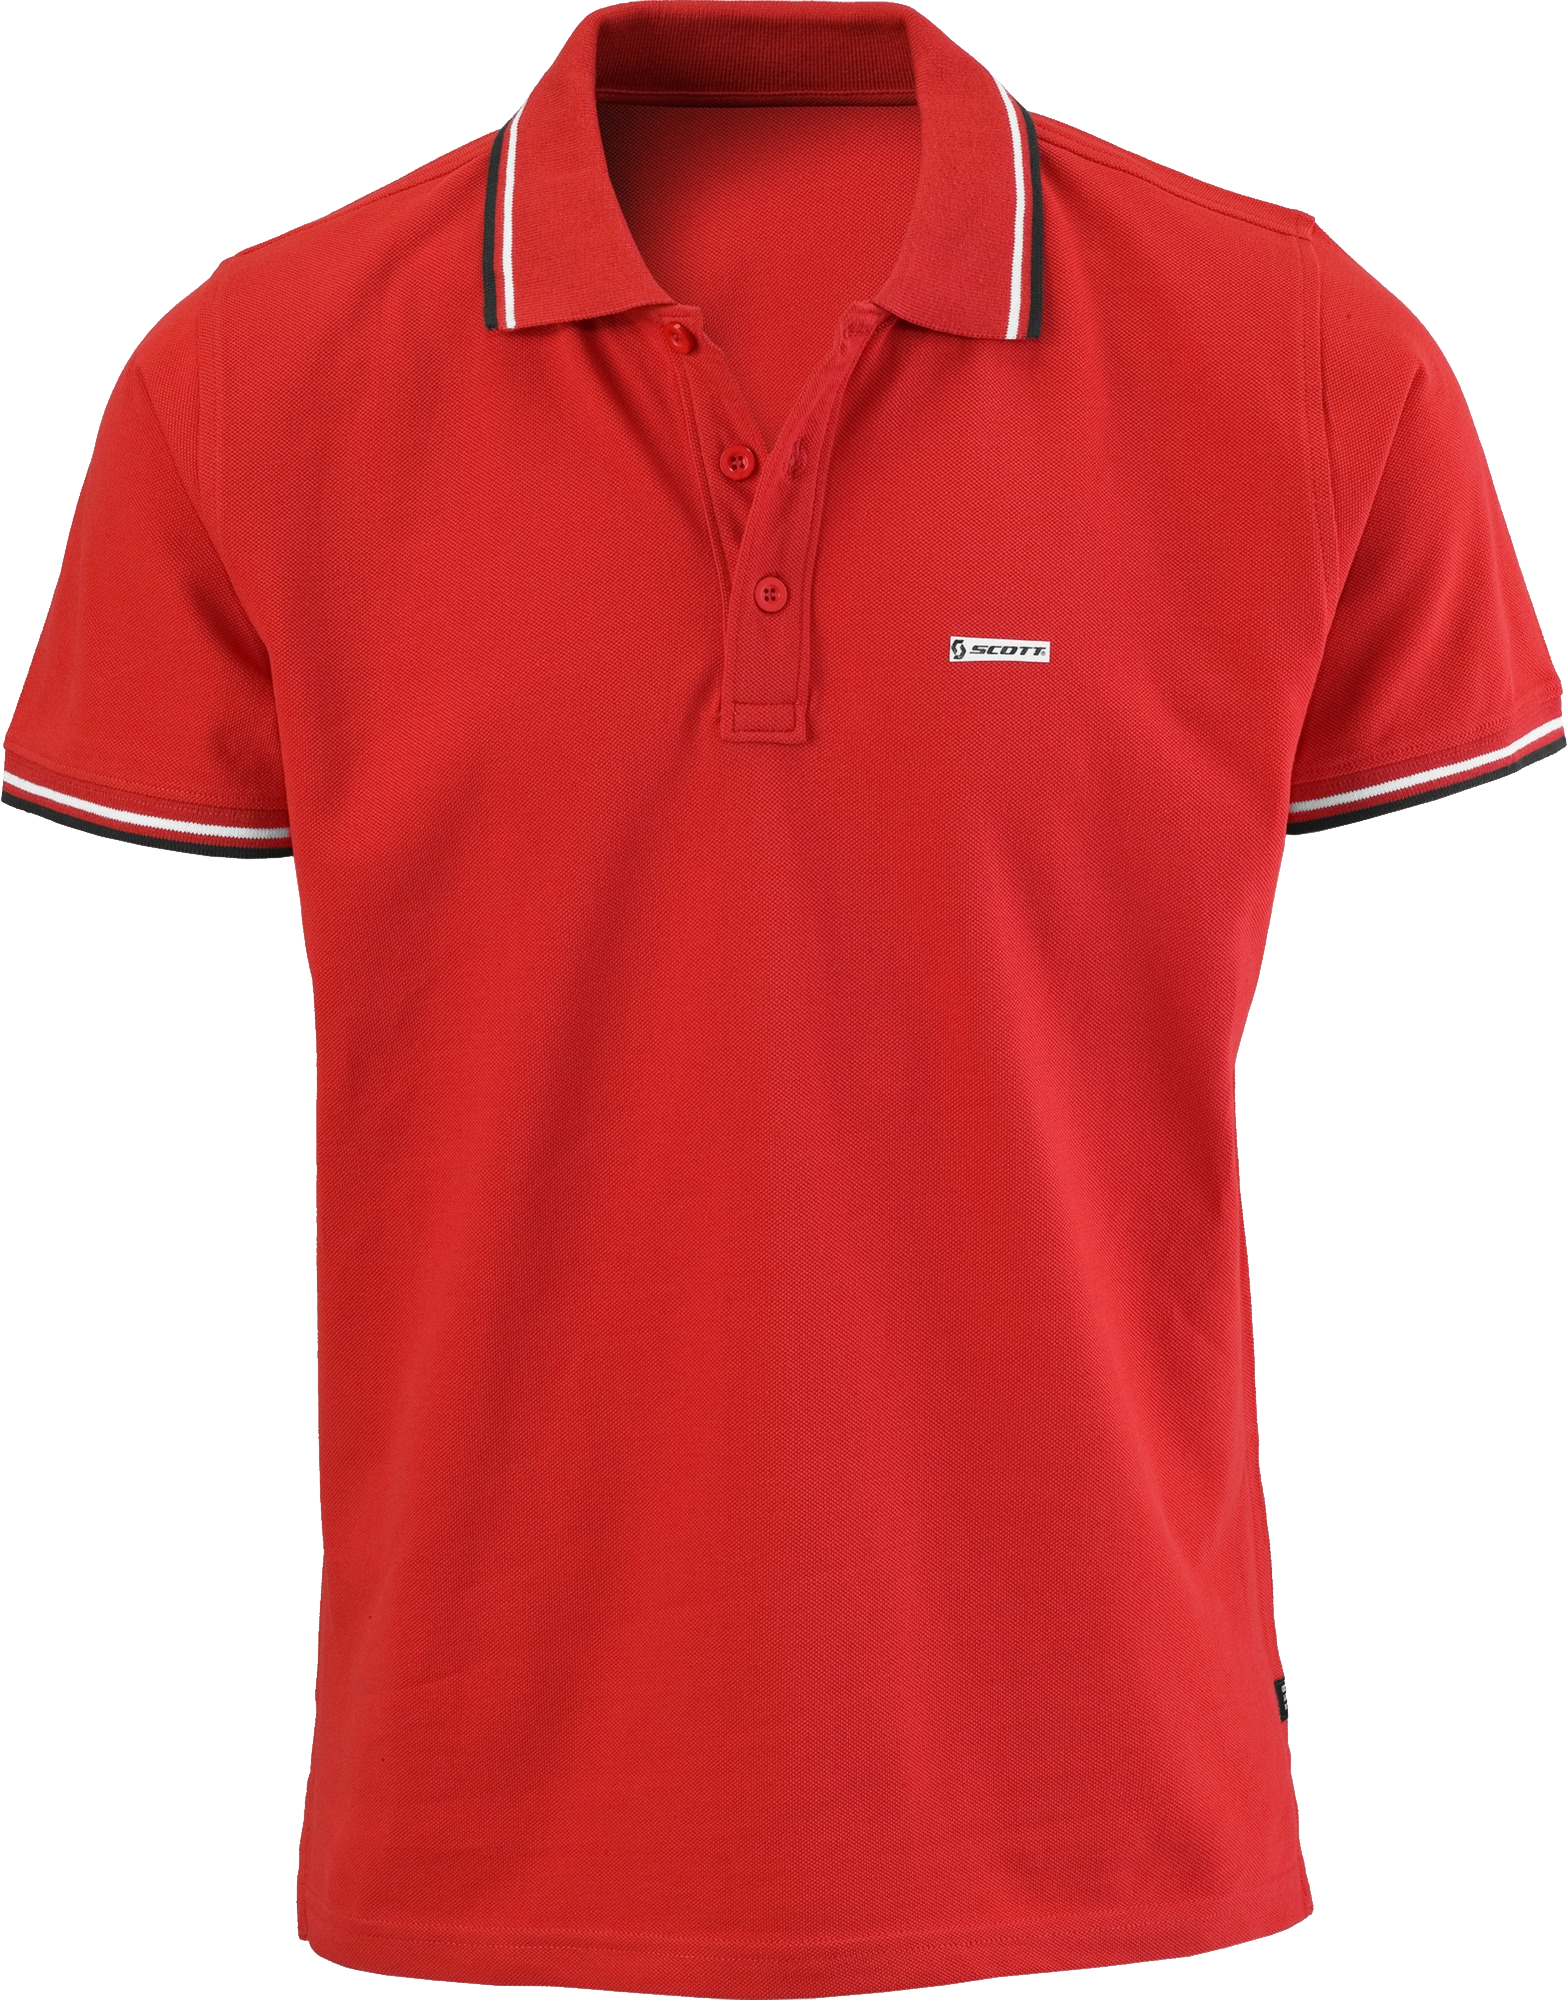 Shirt collar png. Red men s polo